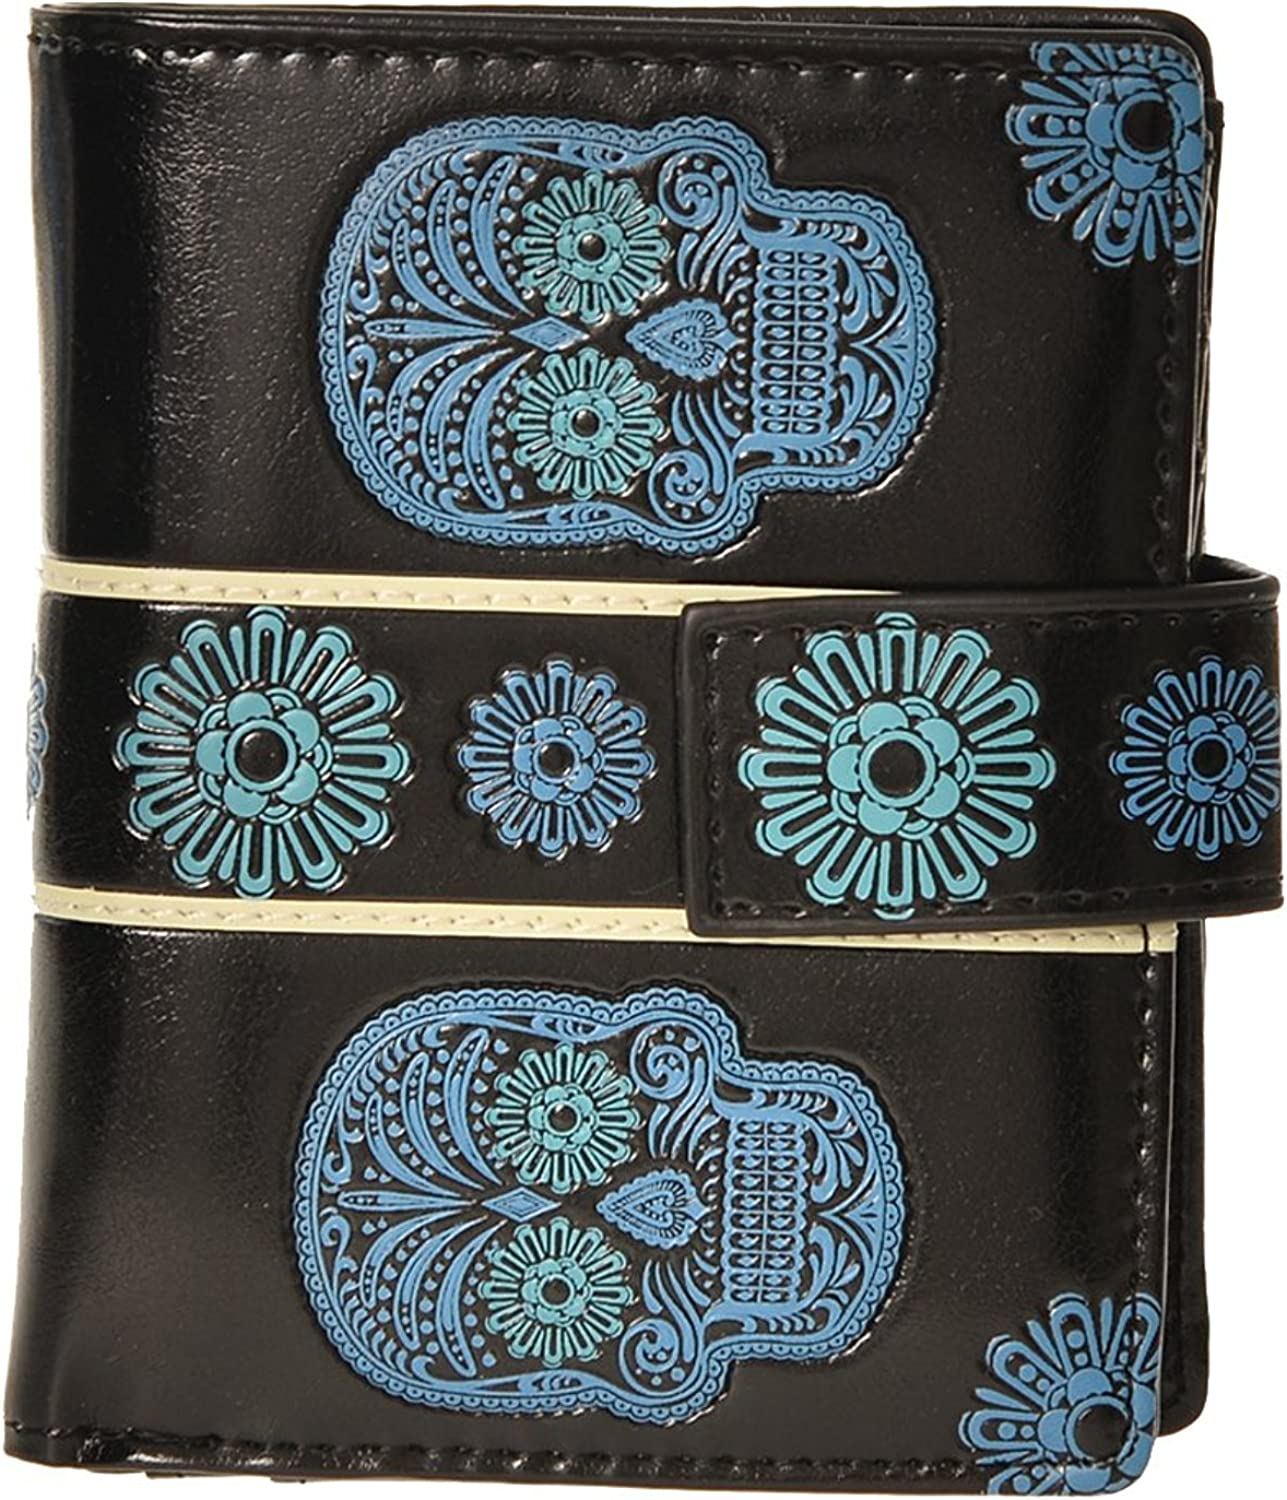 Shag Wear Women's Small Wallet Skull Blackbluee